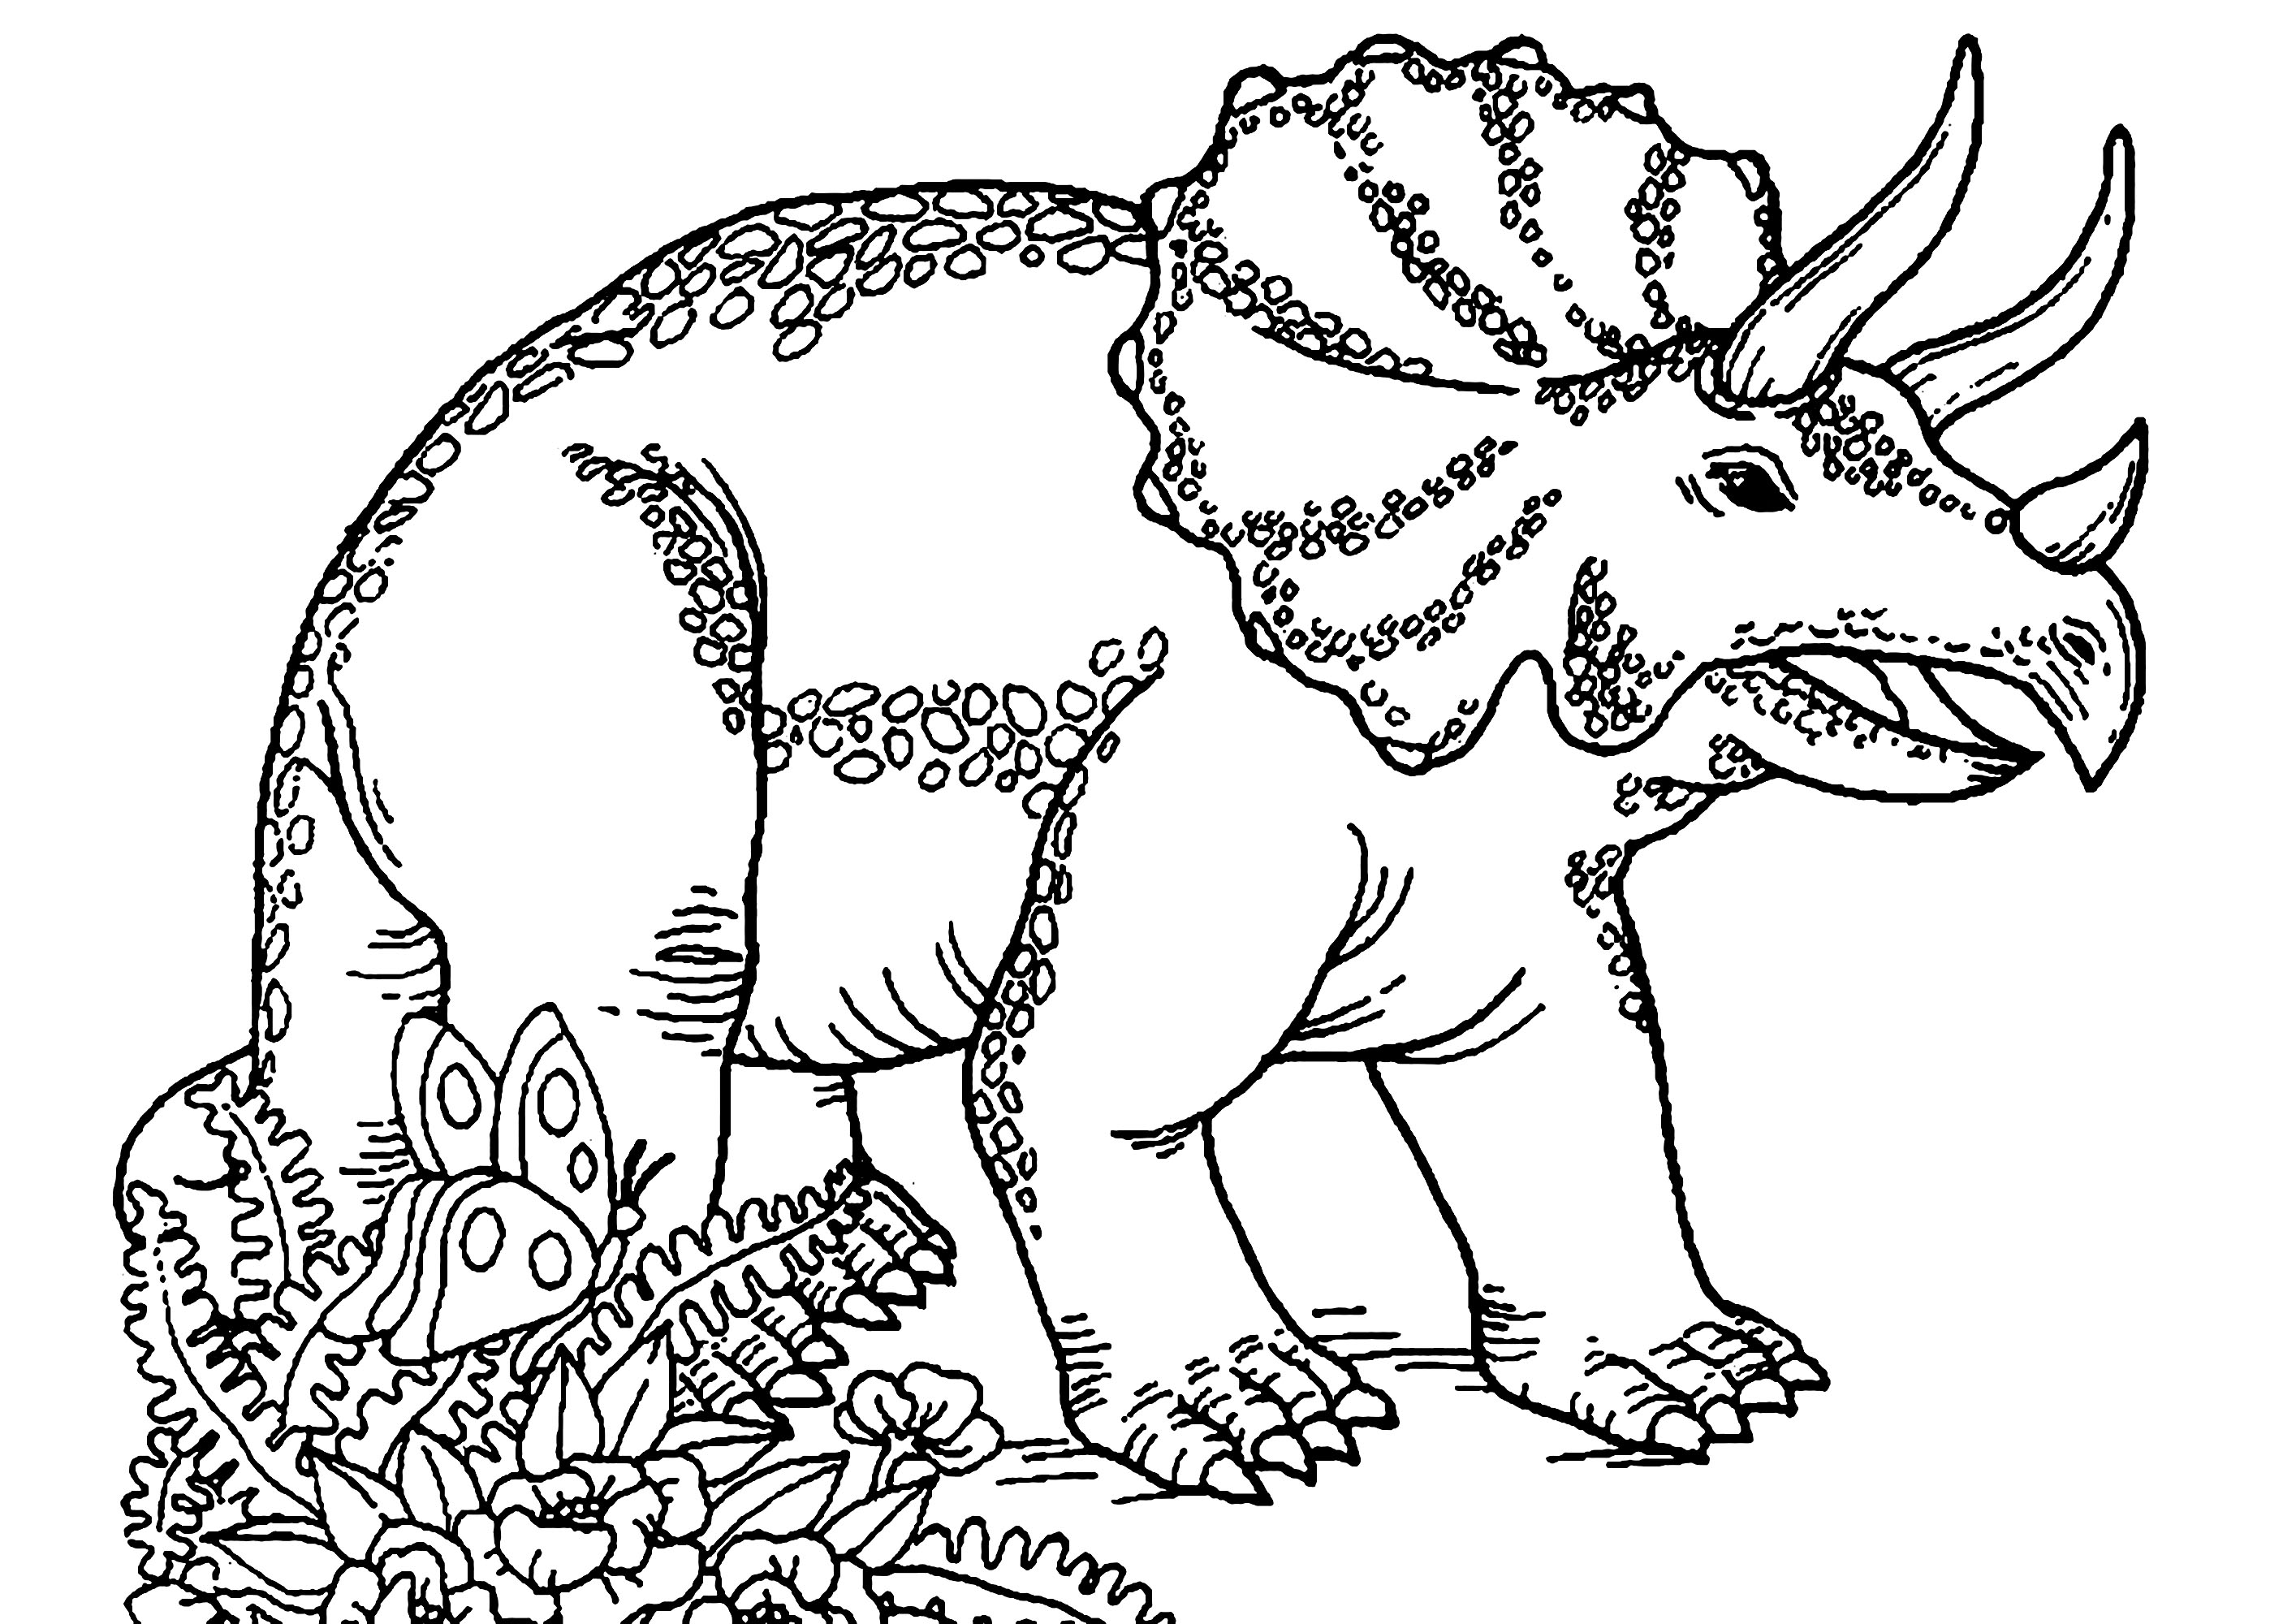 dinosaurs color pages baby dinosaur coloring pages to download and print for free pages color dinosaurs